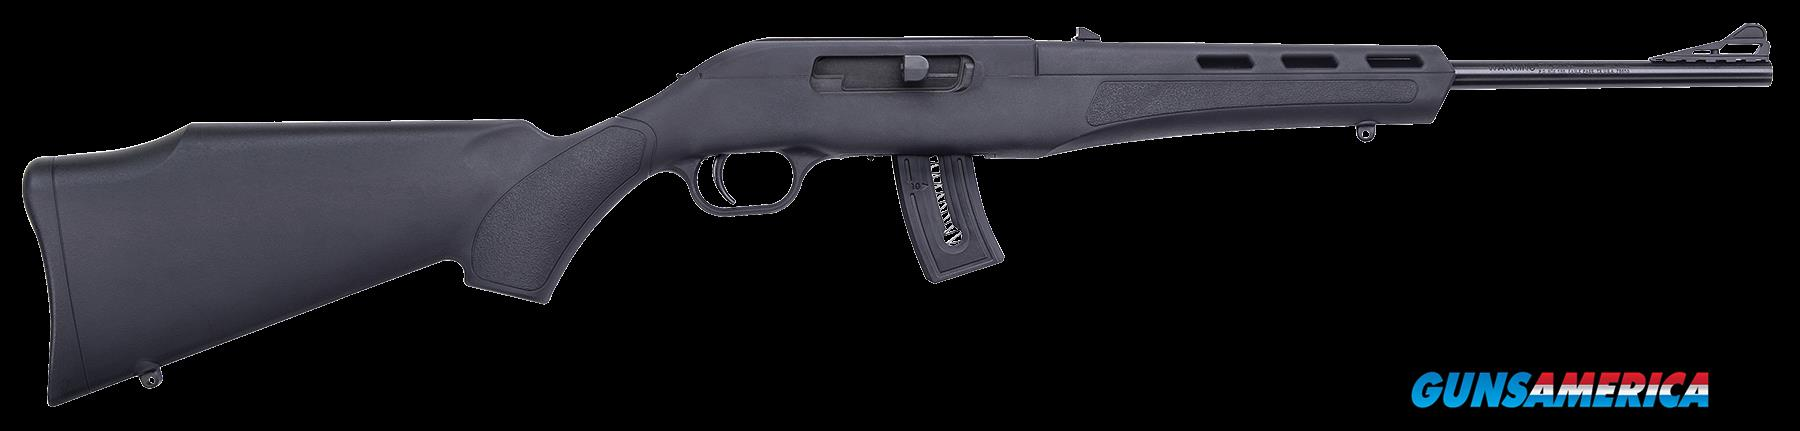 "Mossberg 37312 Blaze Semi-Automatic 22 LR 16.5"" 10+1 Synthetic Black Stk Blued  Guns > Rifles > Mossberg Rifles"